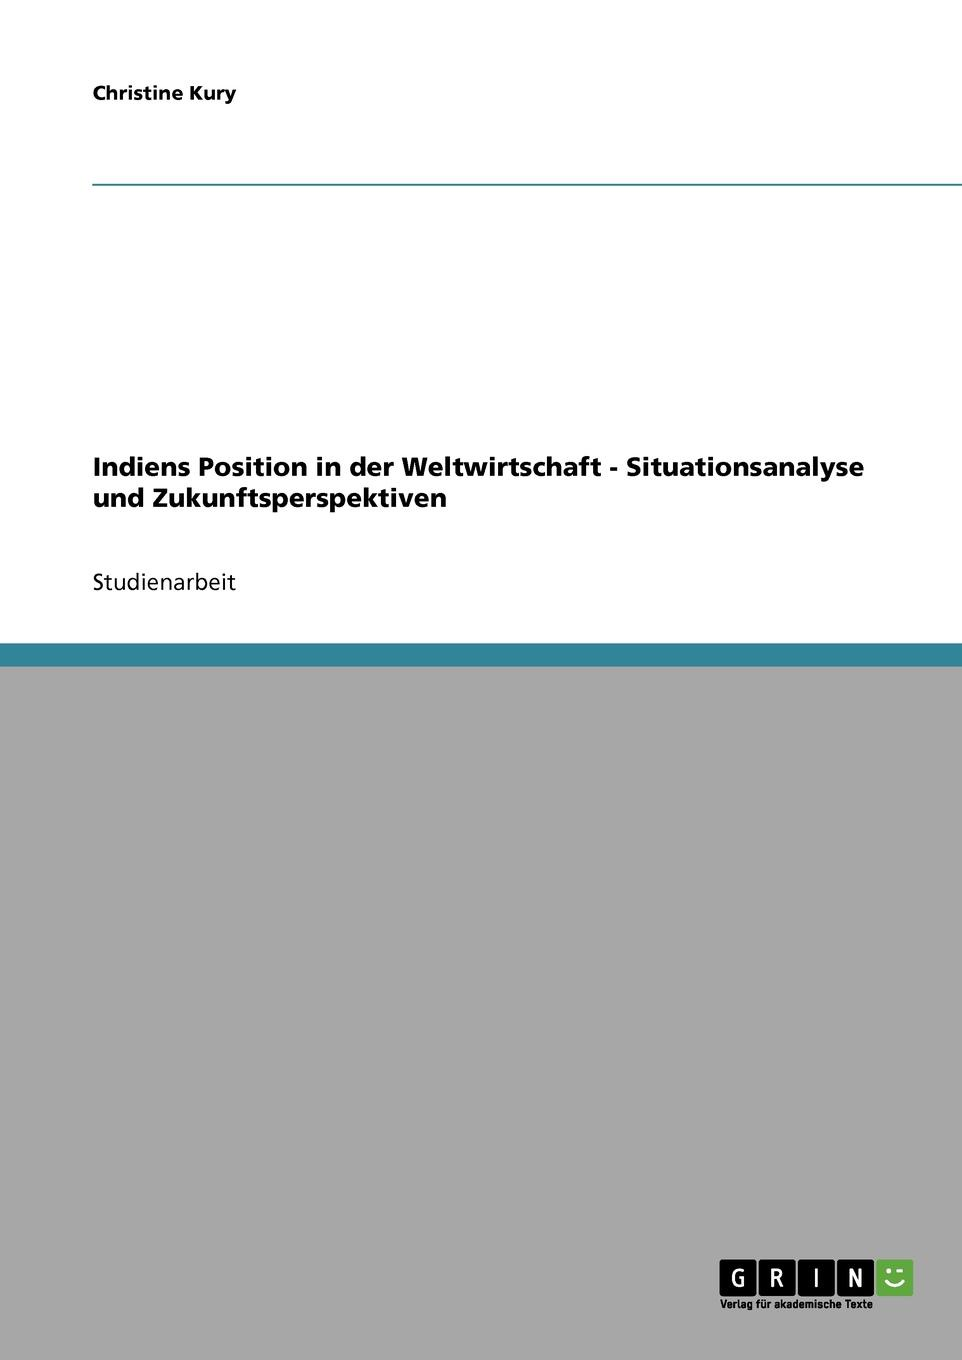 Christine Kury Indiens Position in der Weltwirtschaft. Situationsanalyse und Zukunftsperspektiven motivation and action